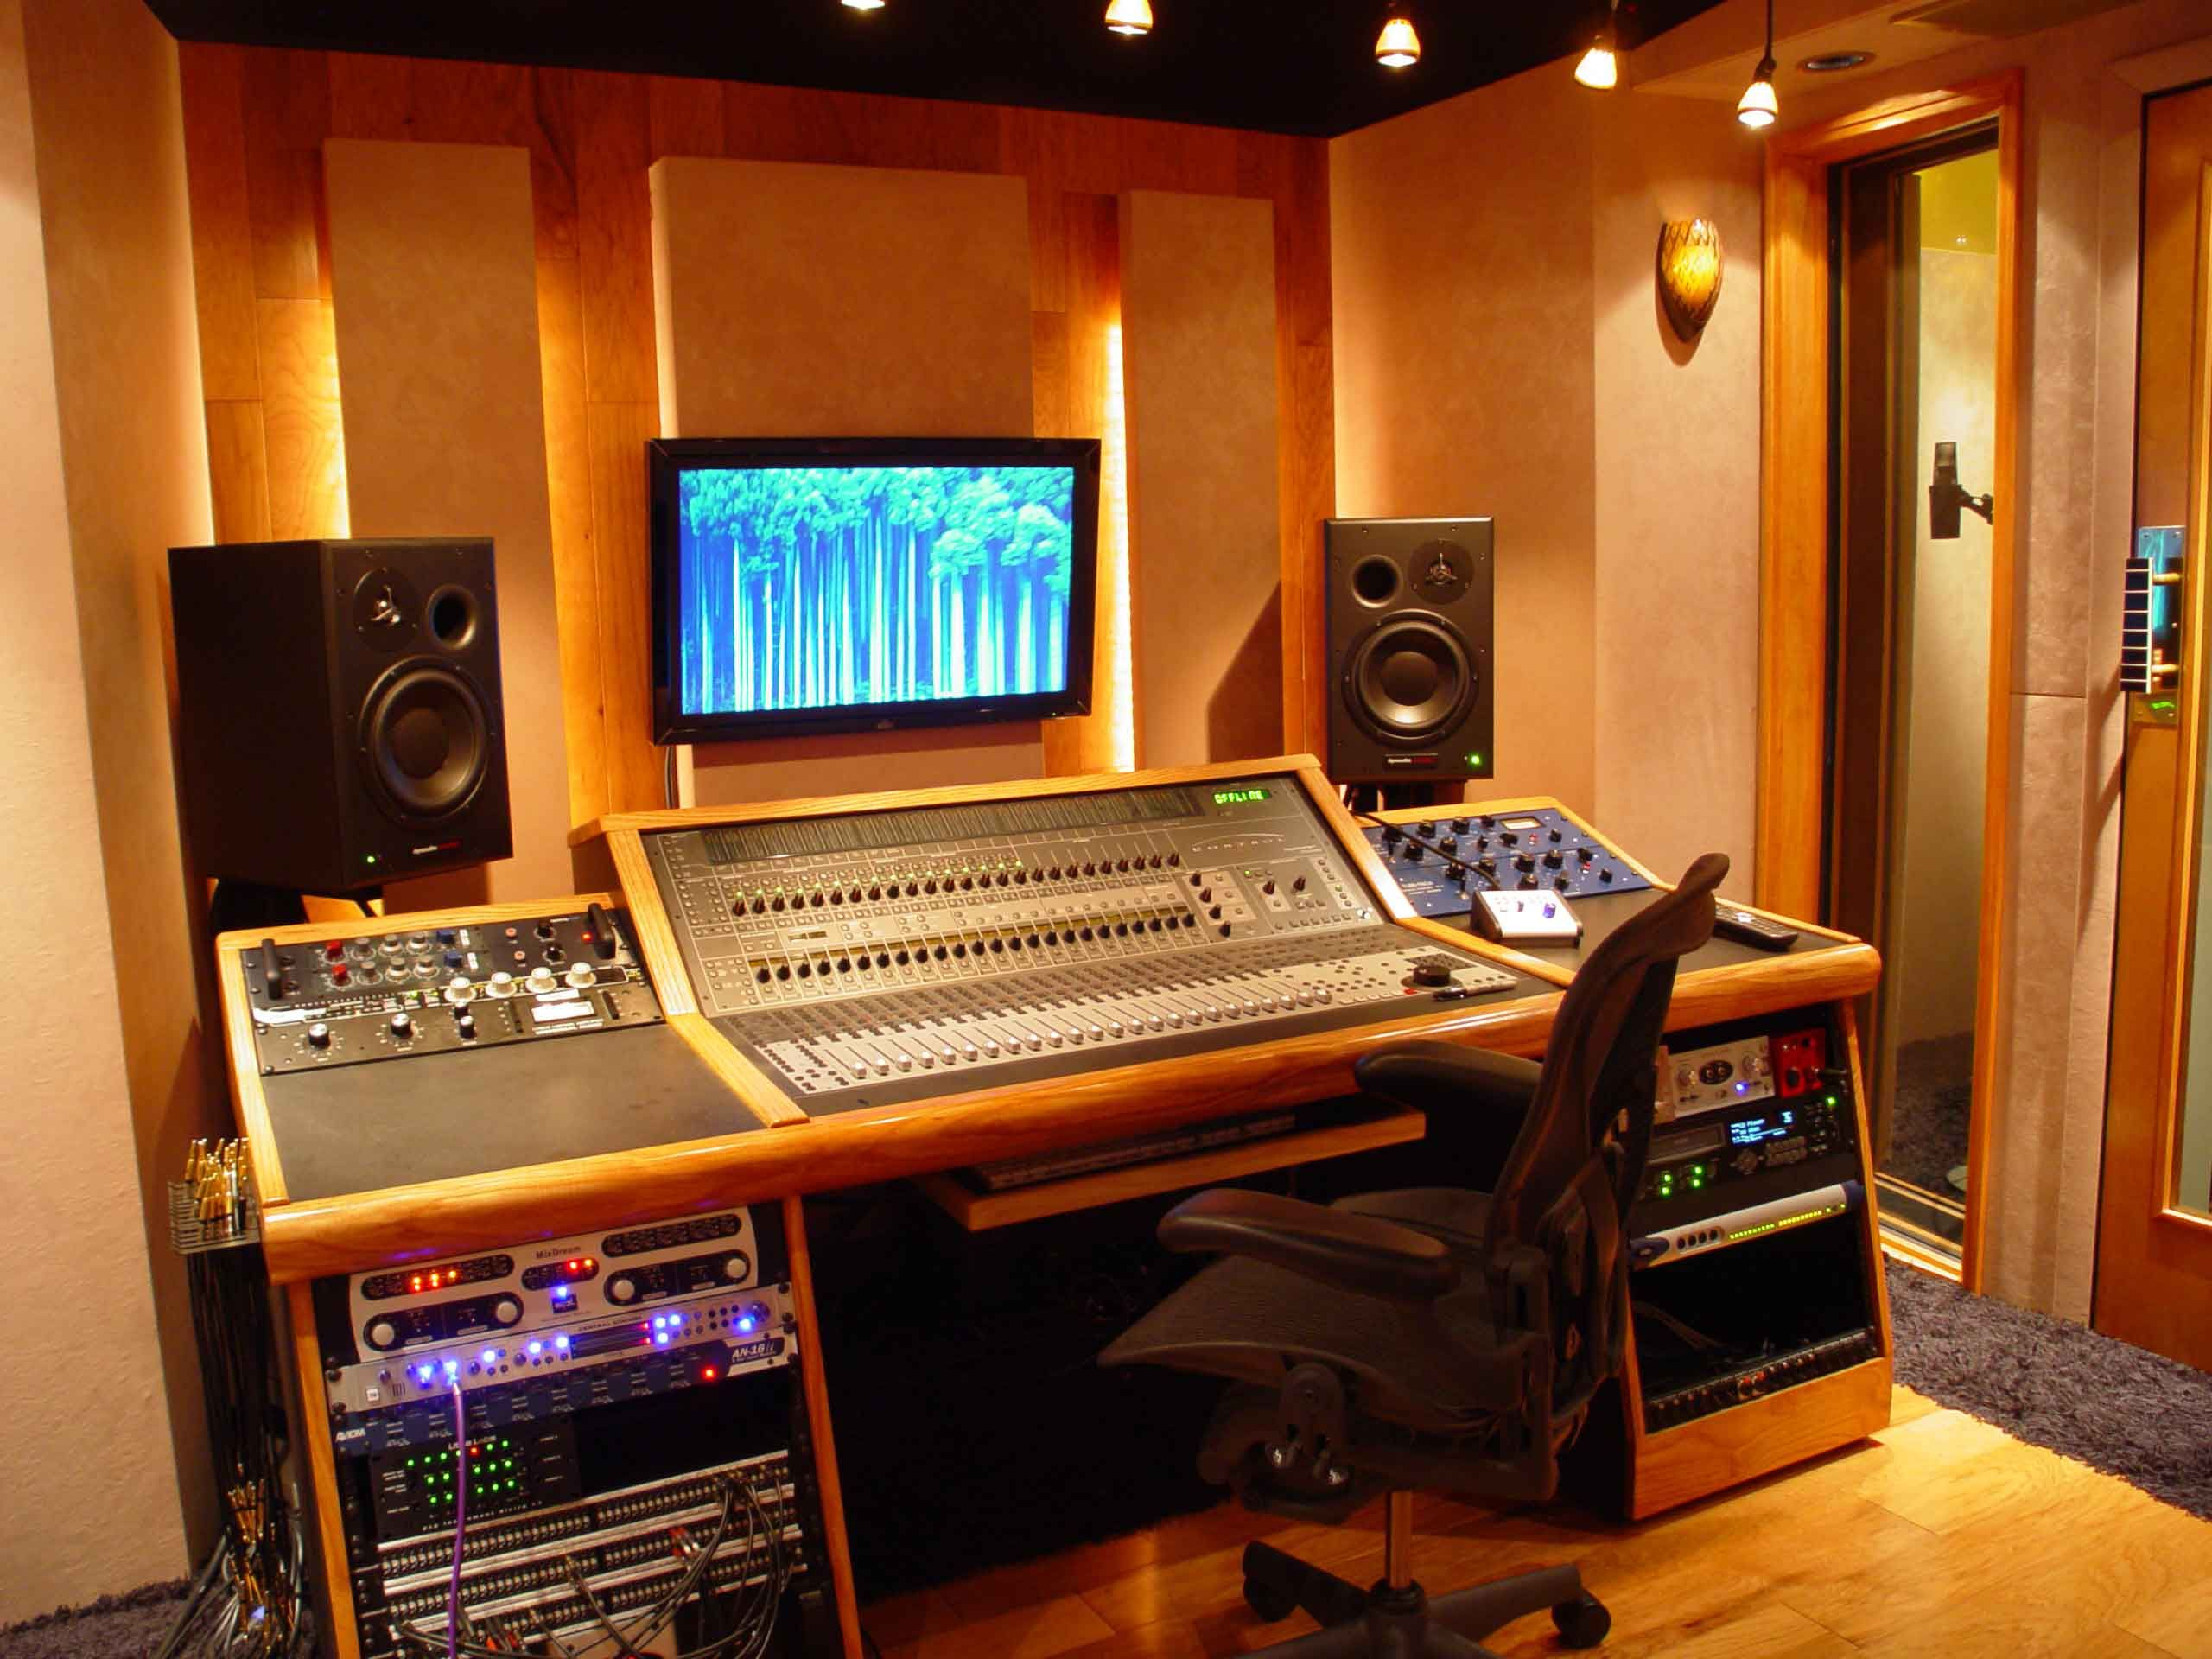 Swell 1000 Images About Recording Studios On Pinterest Underground Largest Home Design Picture Inspirations Pitcheantrous